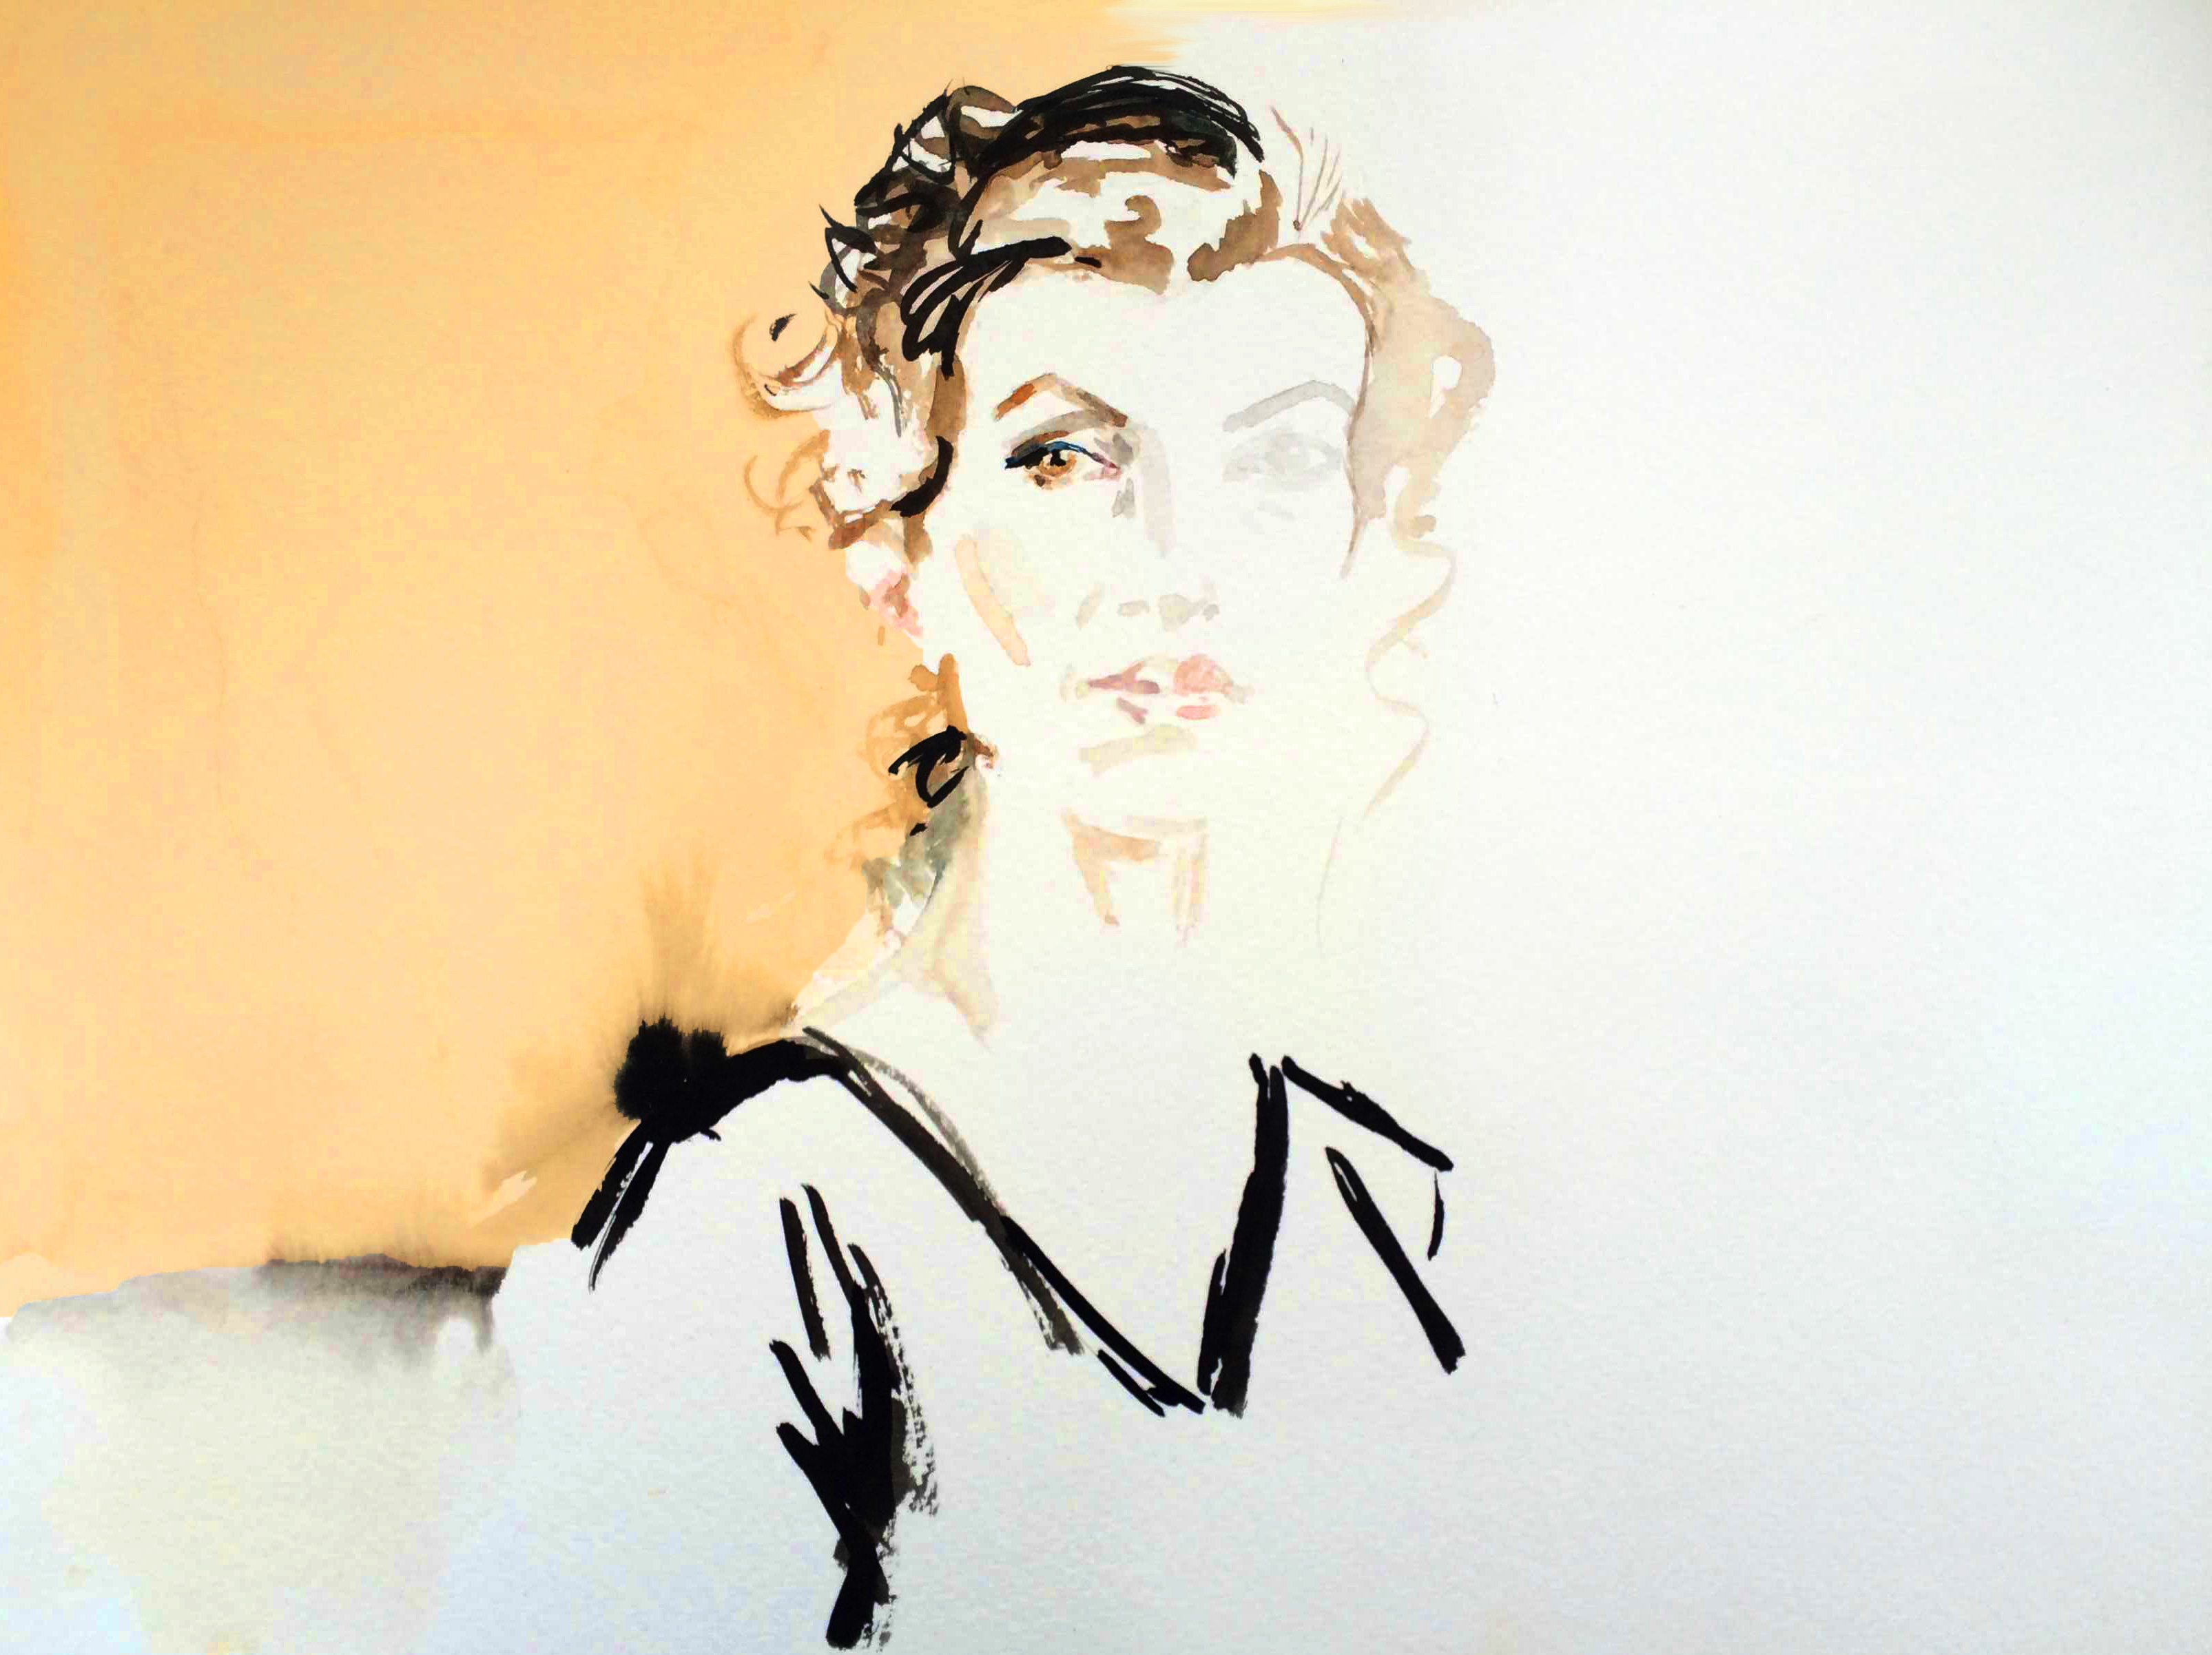 Audrey Azoulay, illustration © Araso